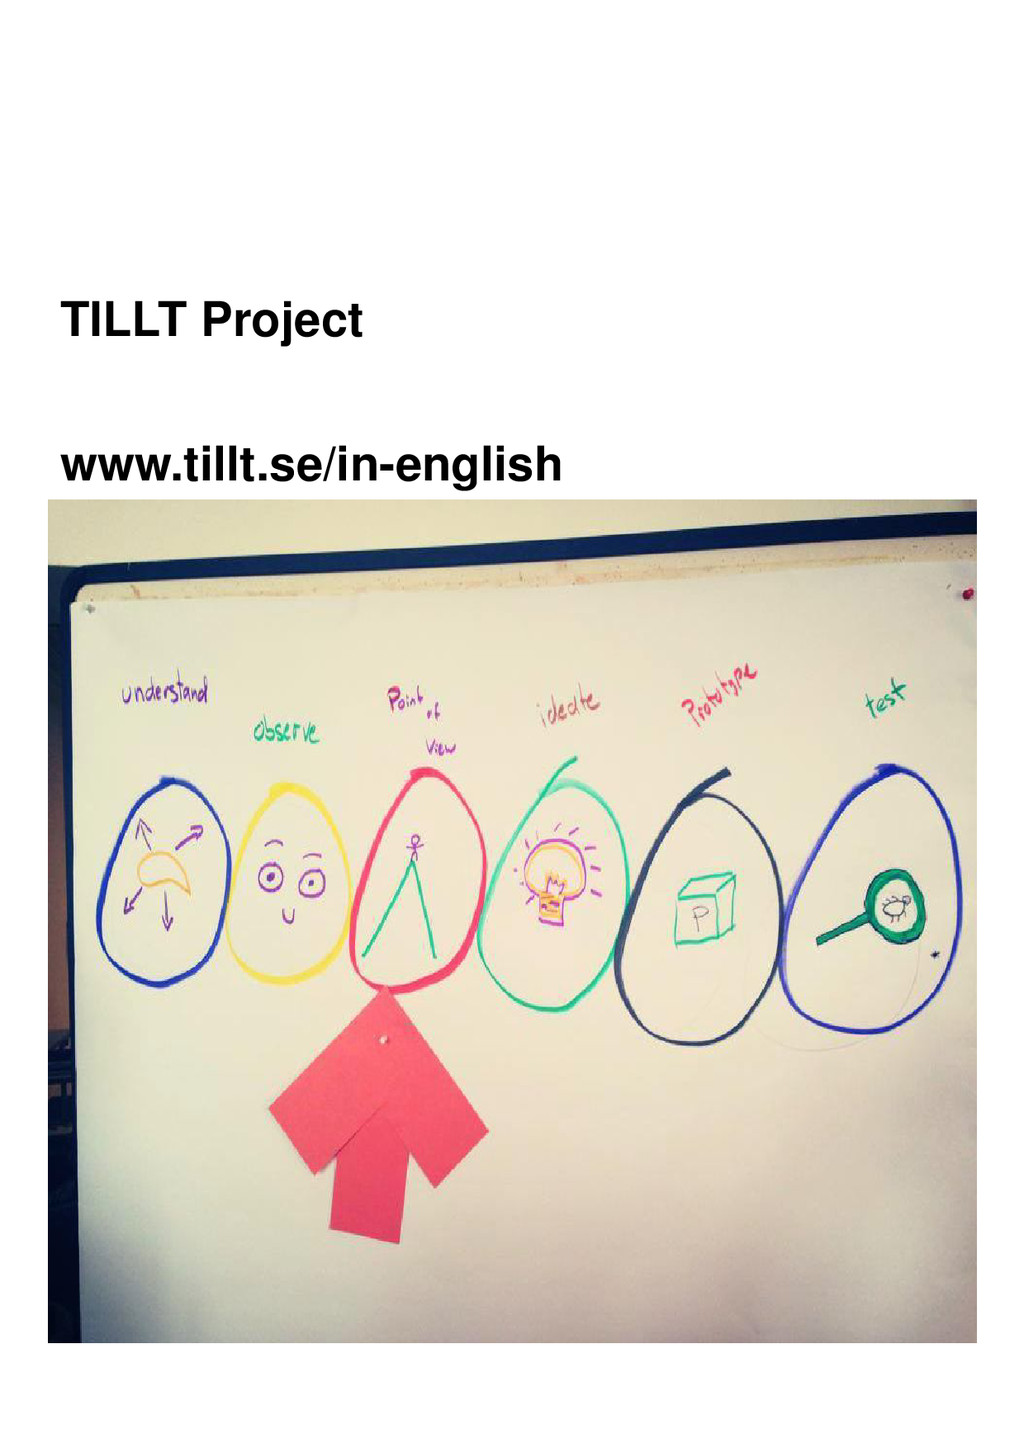 TILLT Project www.tillt.se/in-english